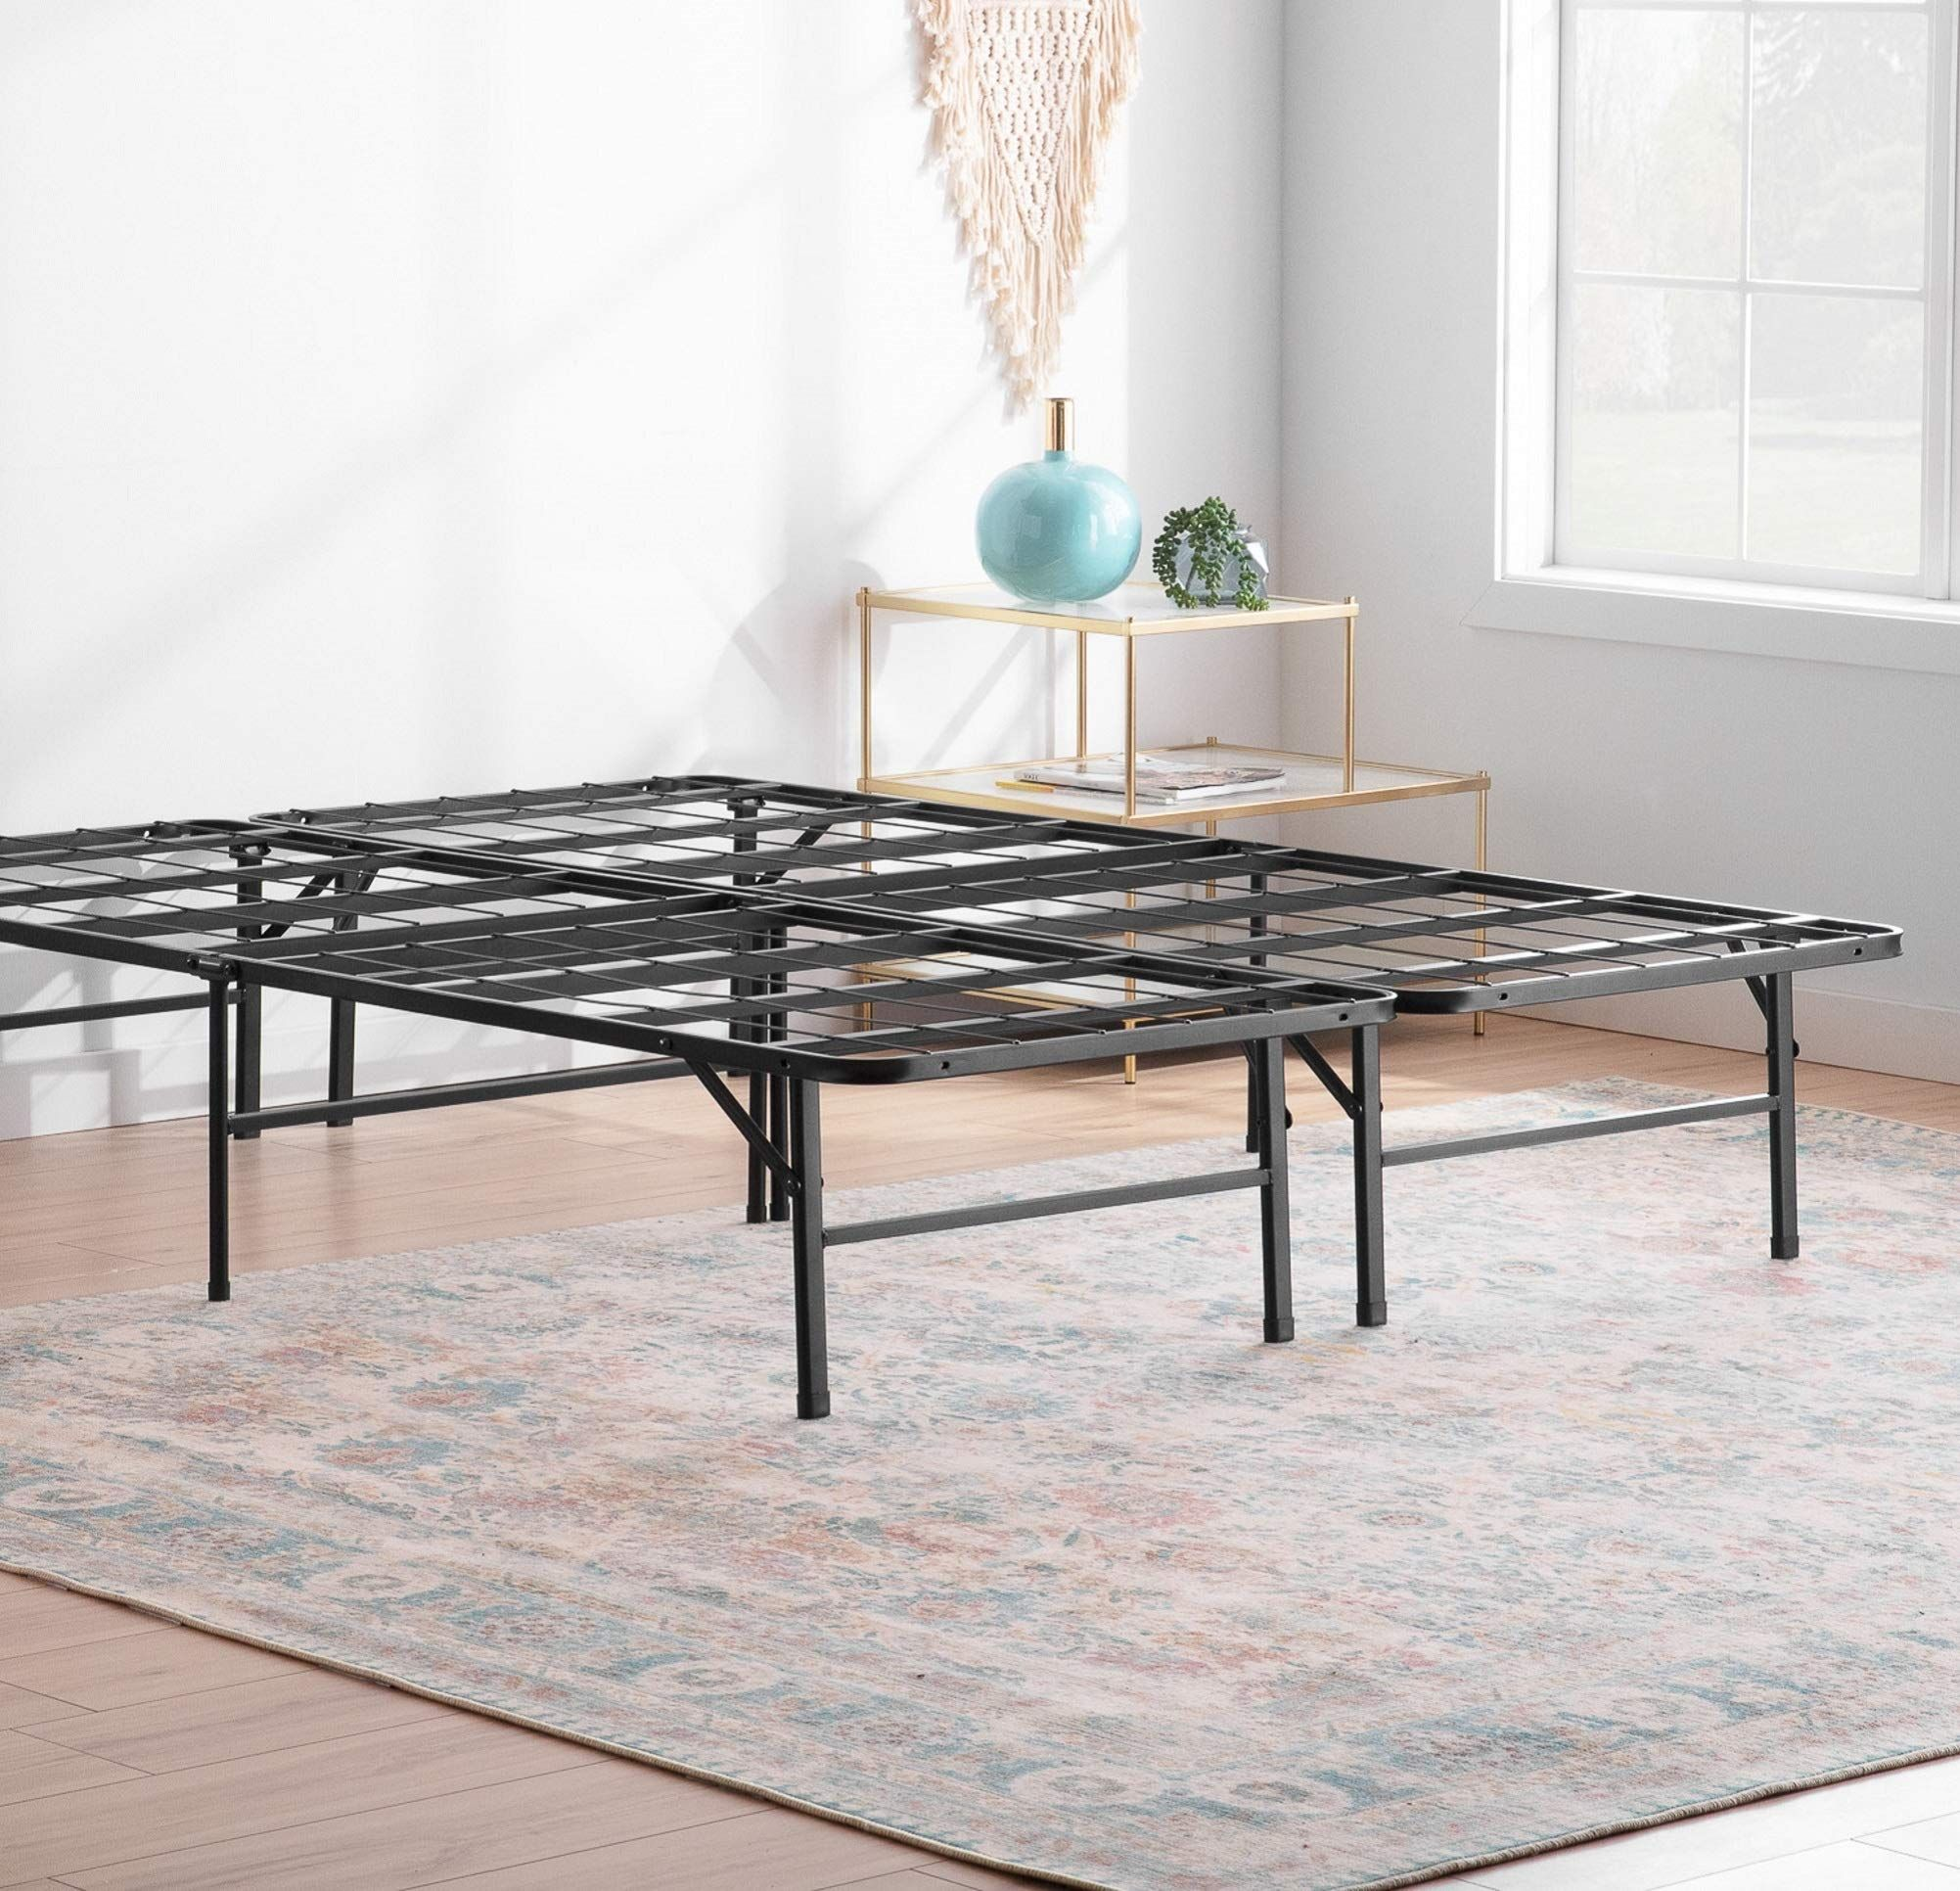 5808239b73008d3942b9169d1f84d44a - Better Homes And Gardens 13 Adjustable Steel Bed Frame